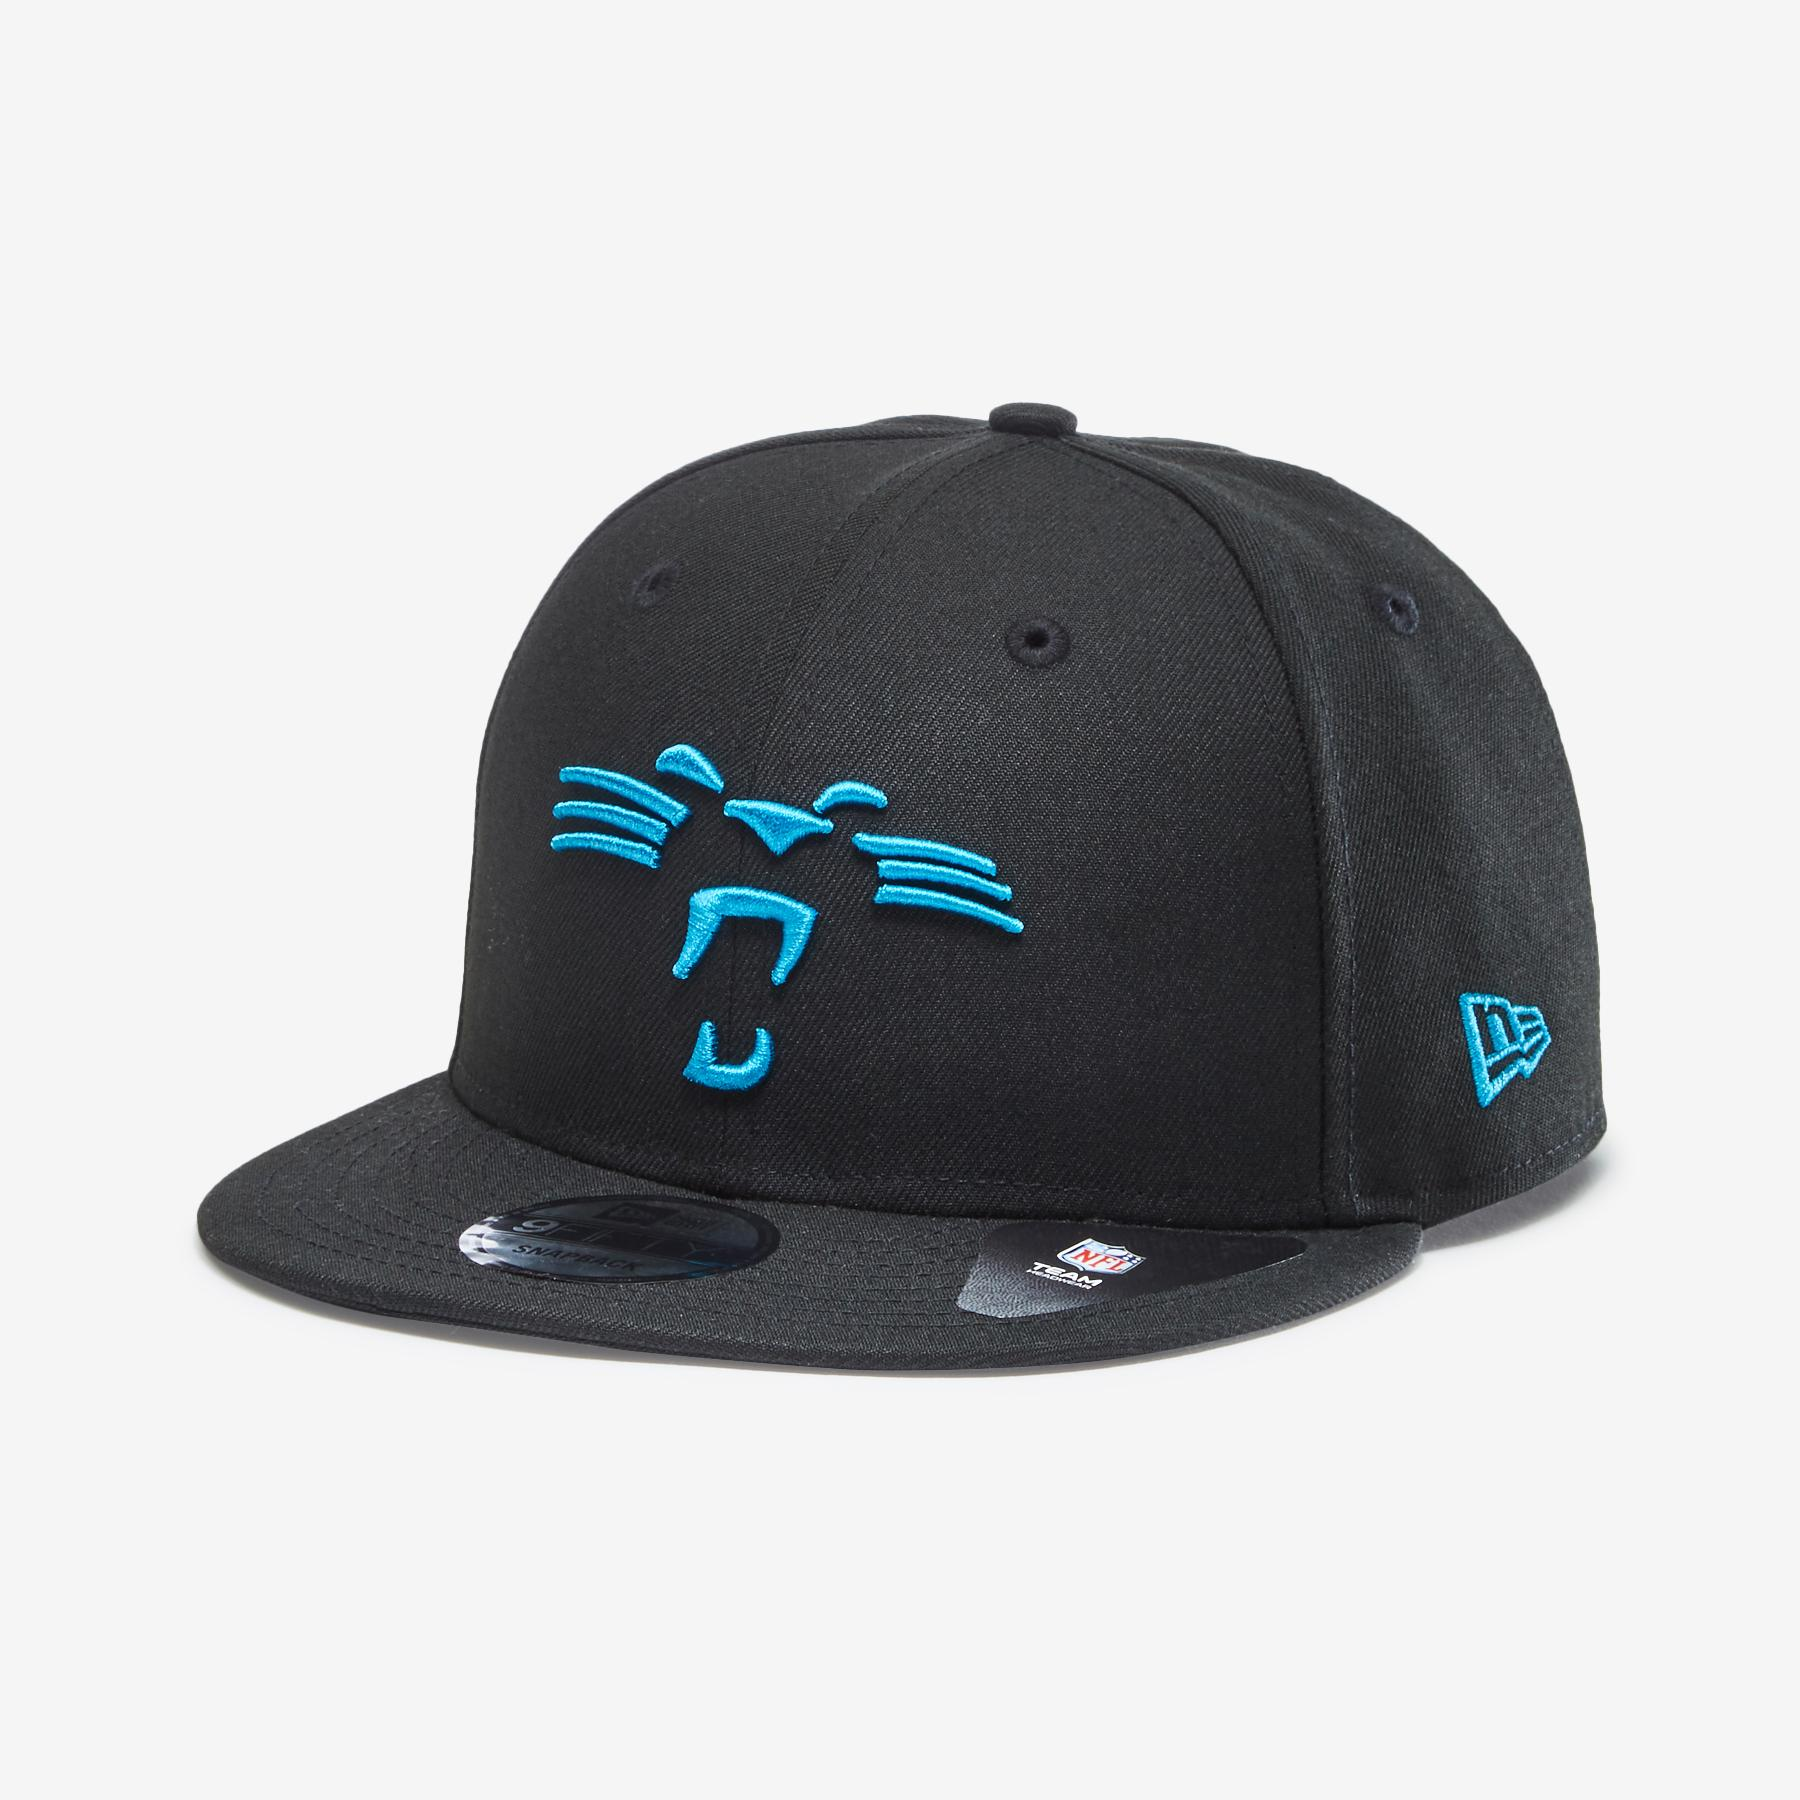 Panthers 9fifty Snapback